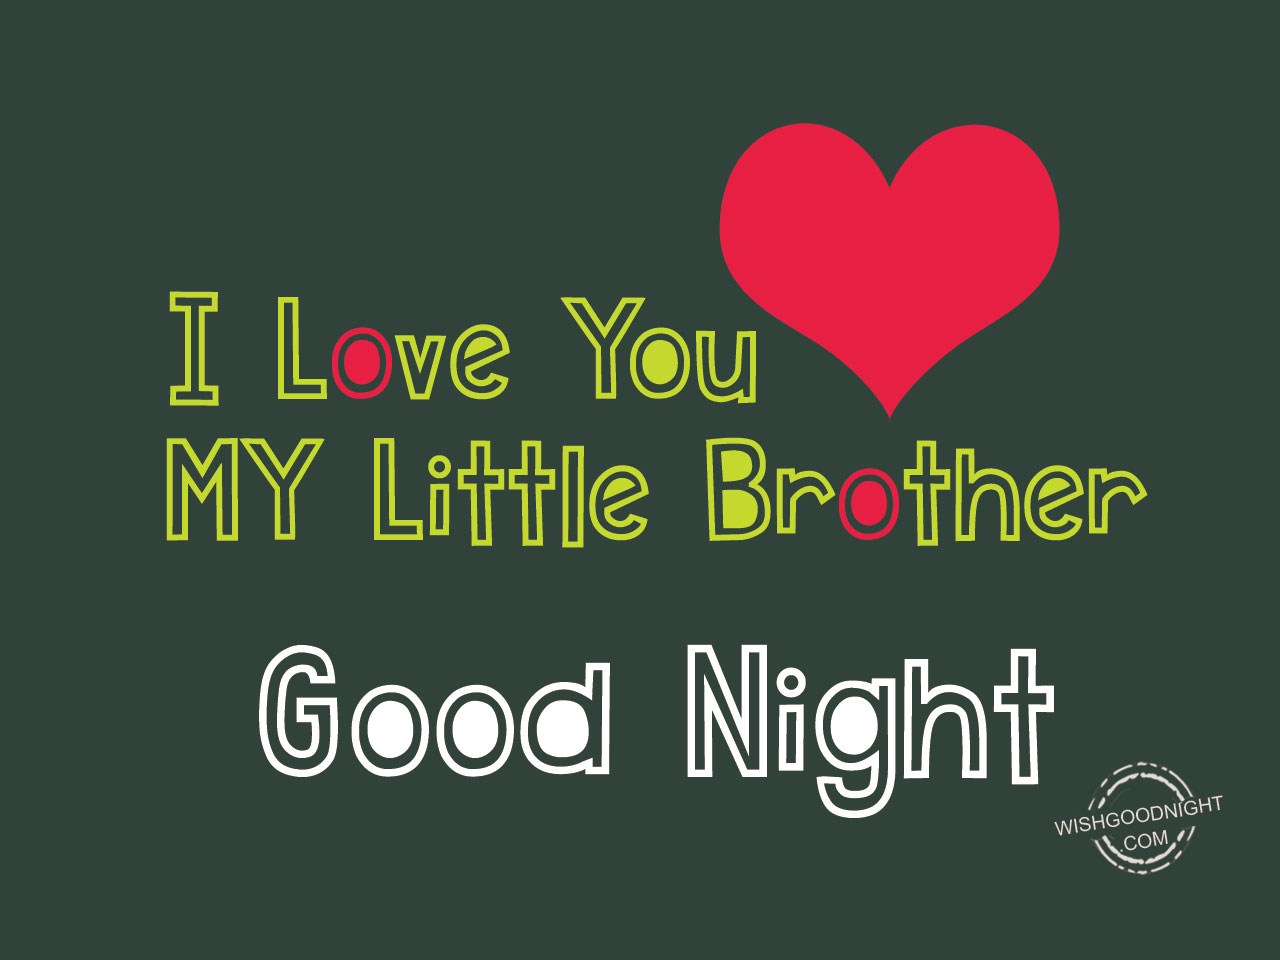 I Love You My Little Brother Good Night Pictures Wishgoodnightcom